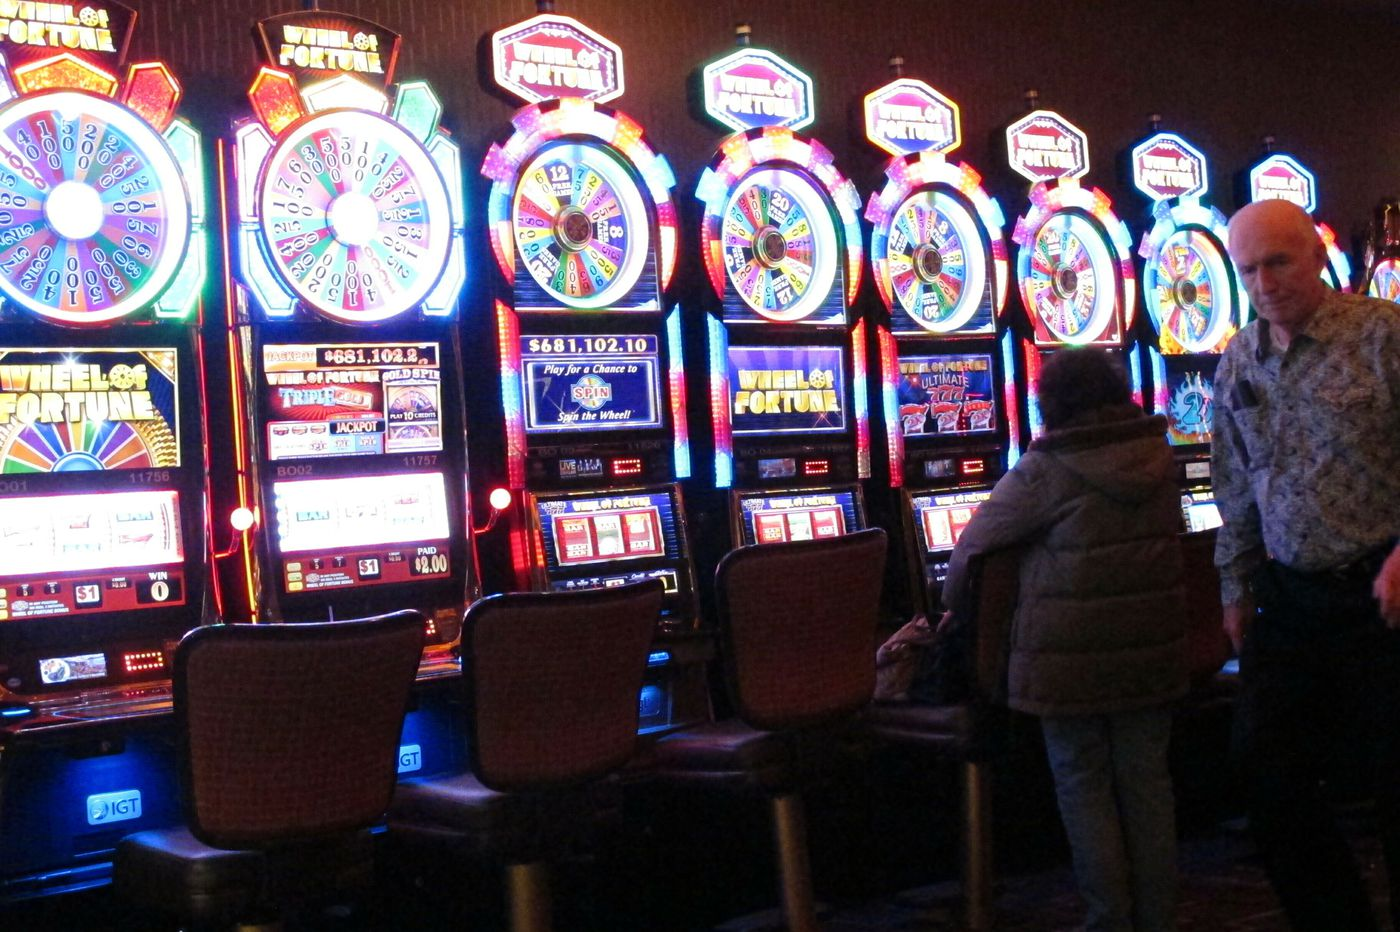 Atlantic City casinos see profits tumble in 2018 after two shuttered gambling halls reopened